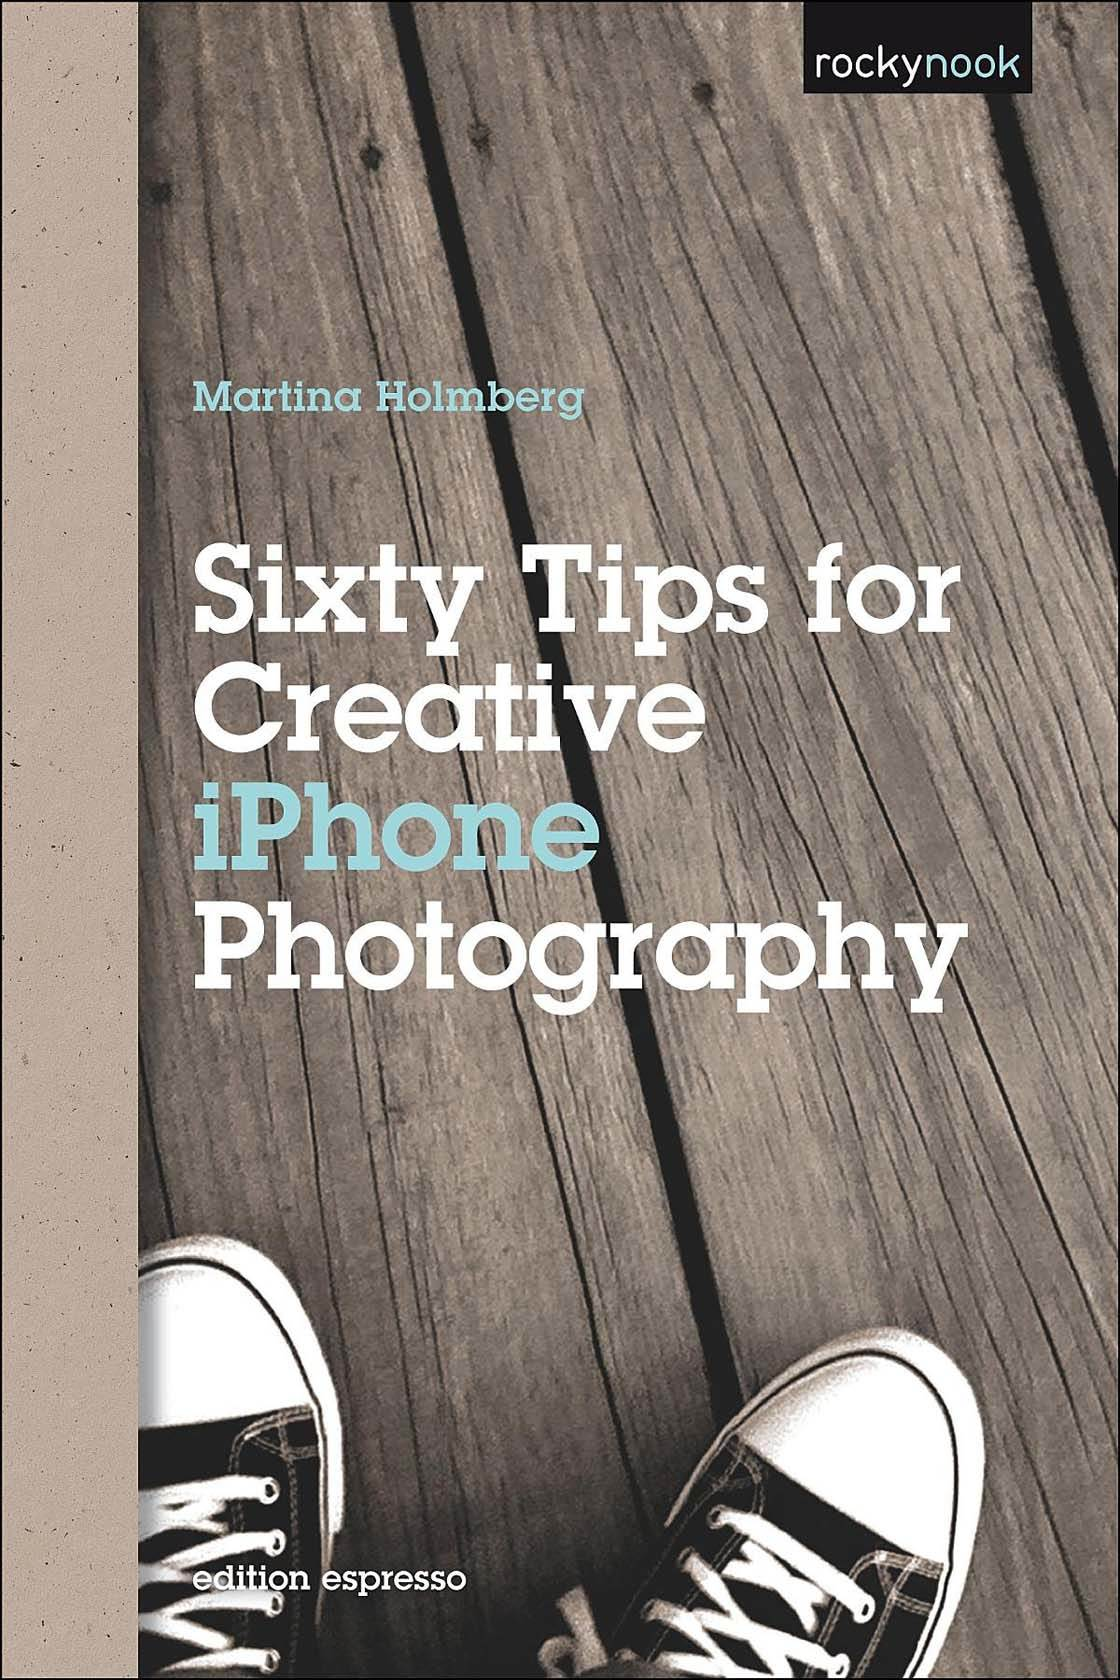 Best iPhone Photography Books 3 no script